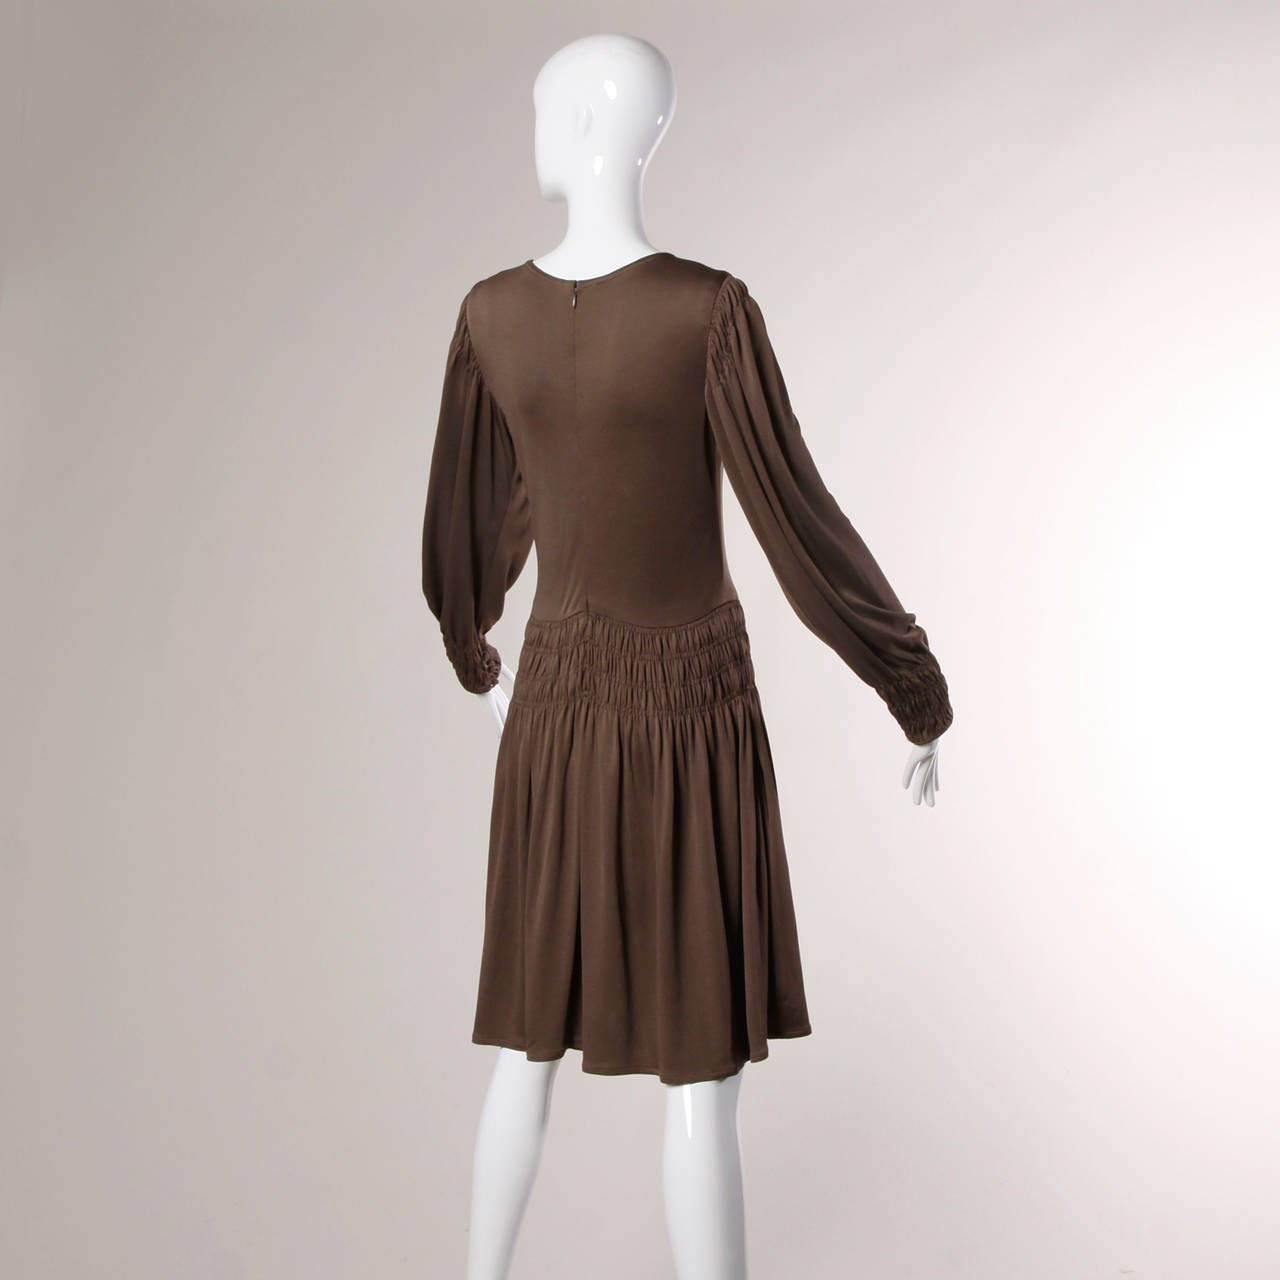 Bill Blass for Saks Fifth Avenue Ruched Brown Jersey Knit Dress For Sale 2